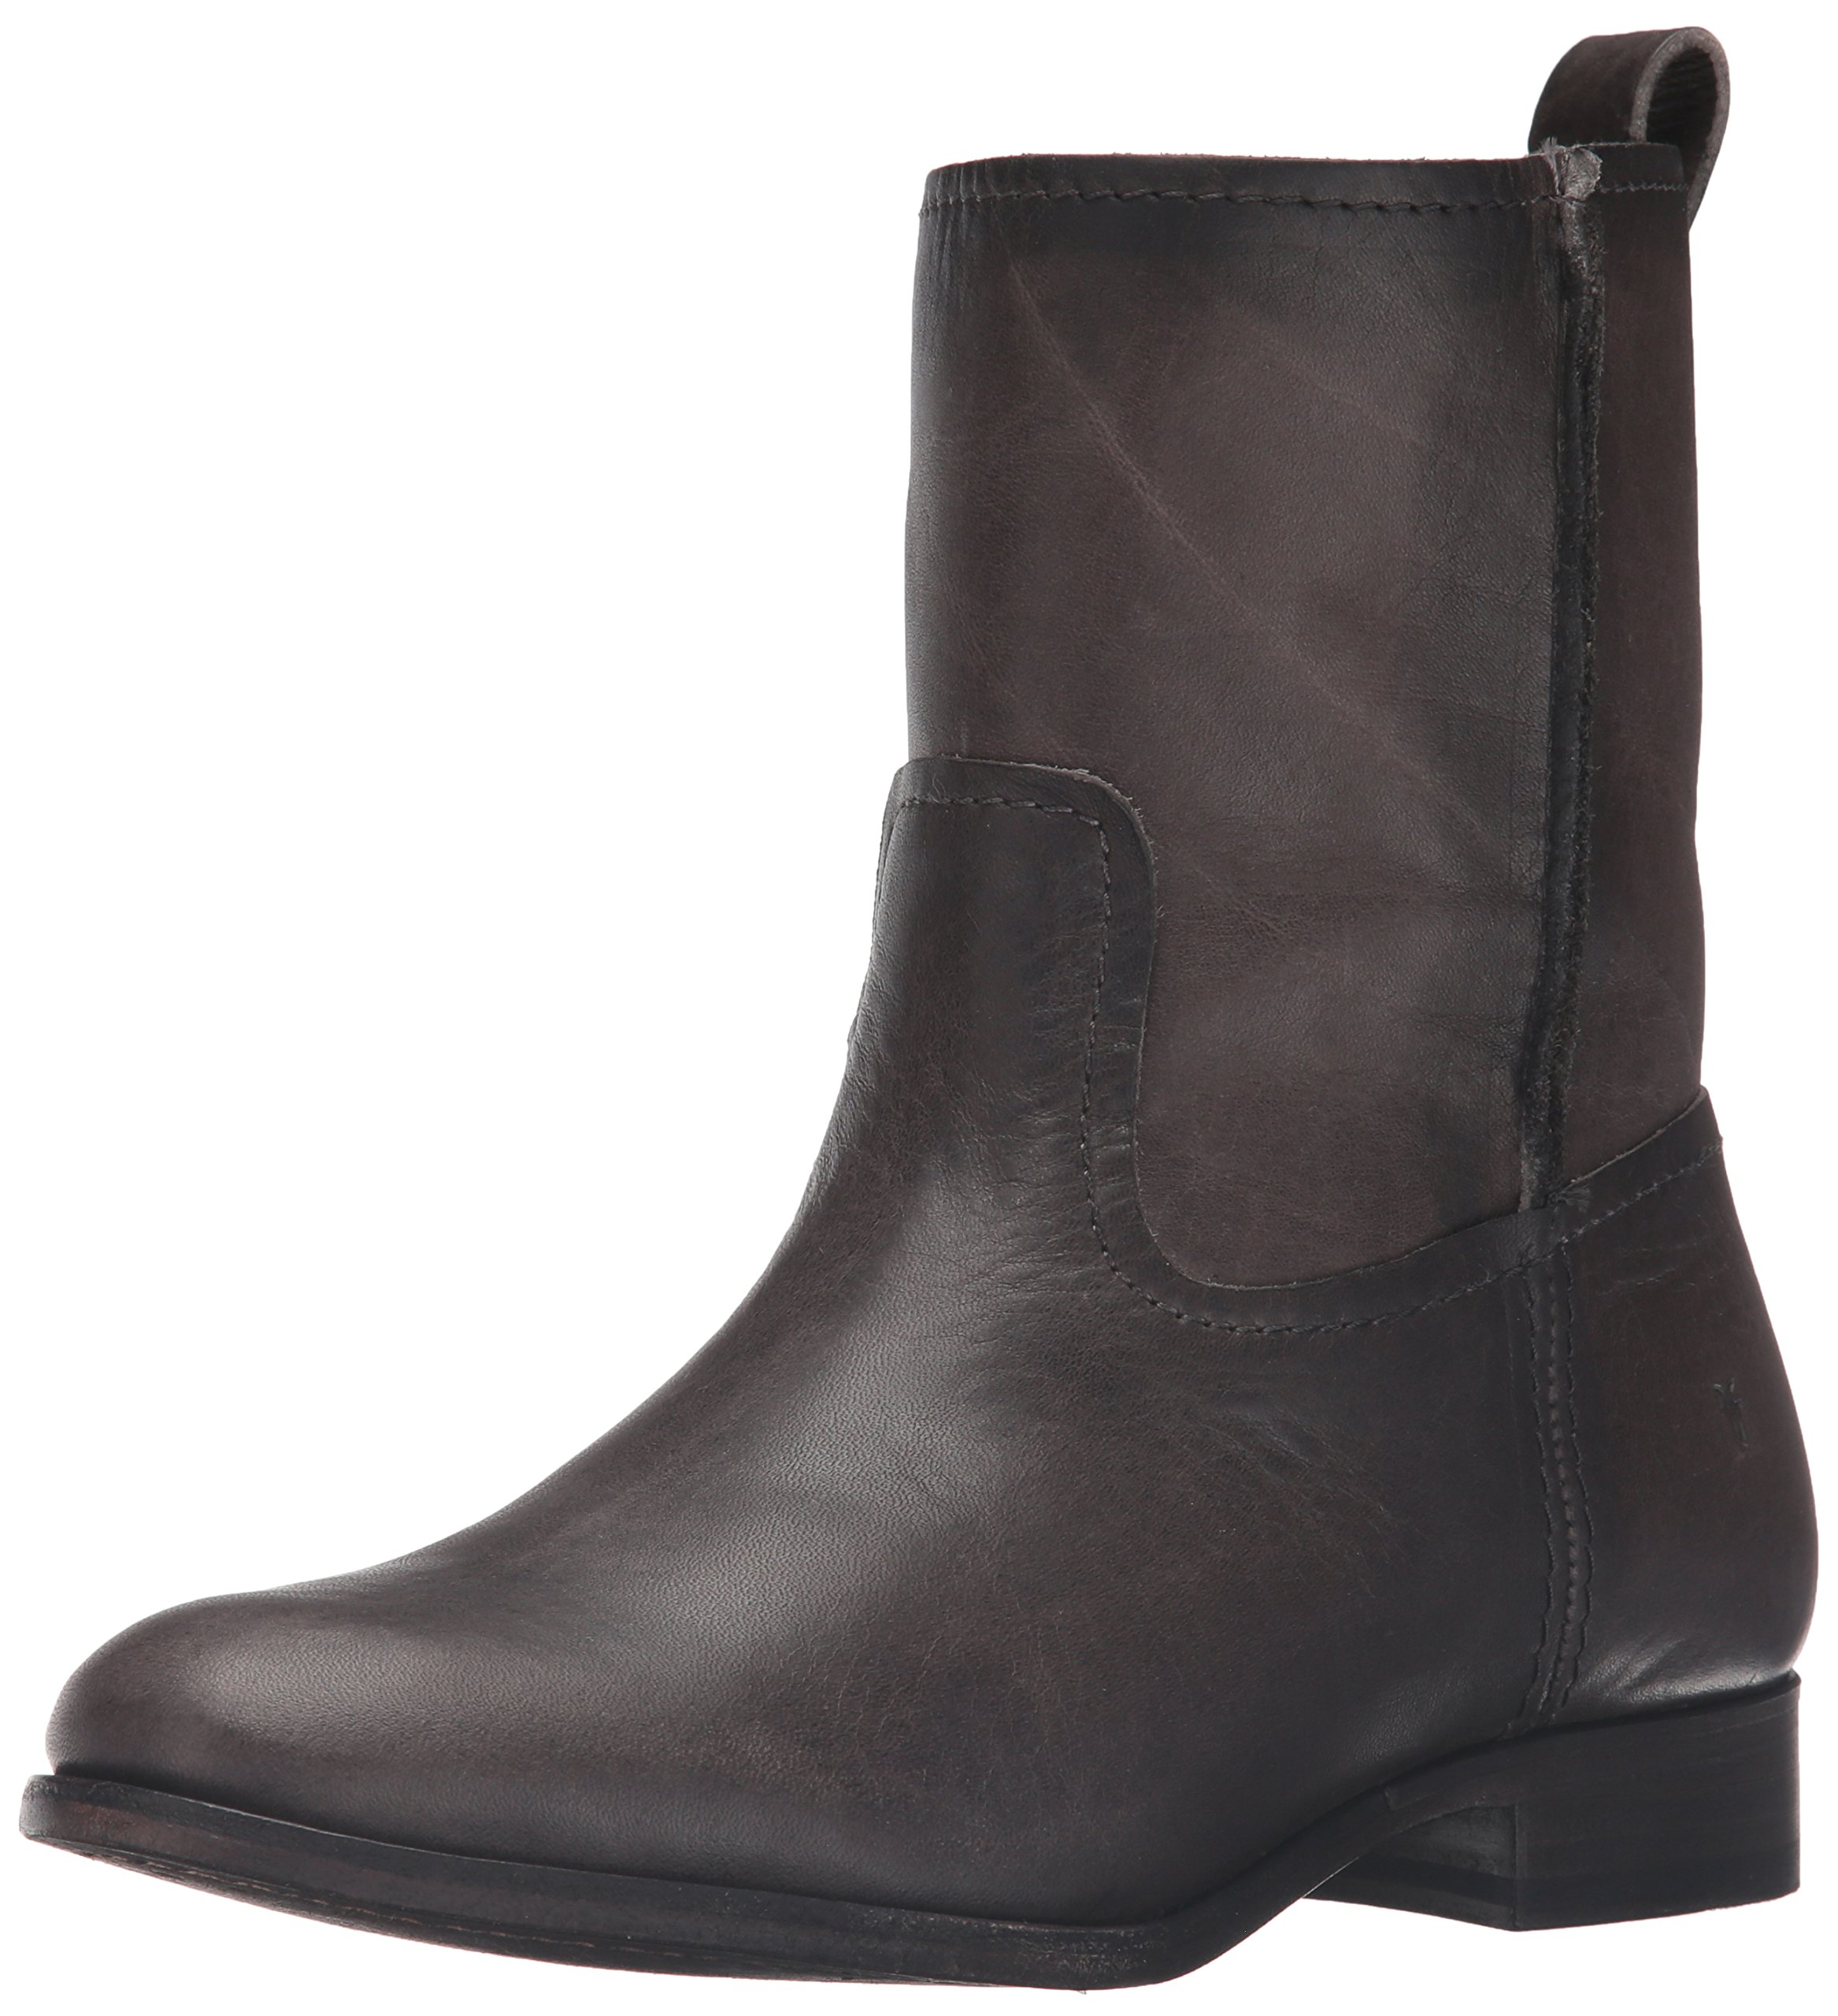 FRYE Women's Cara Short Leather Boot, Smoke, 6.5 M US